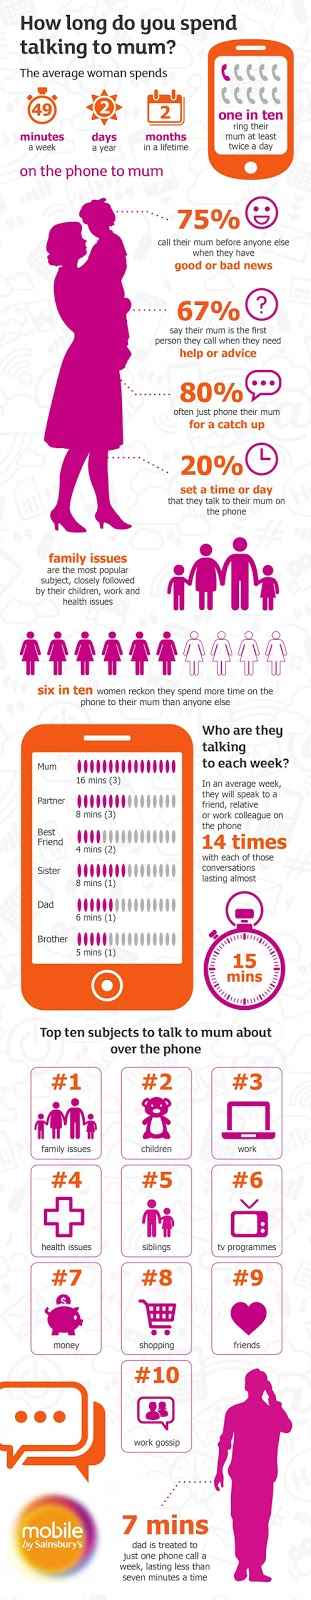 talking to mum on the phone, infographic